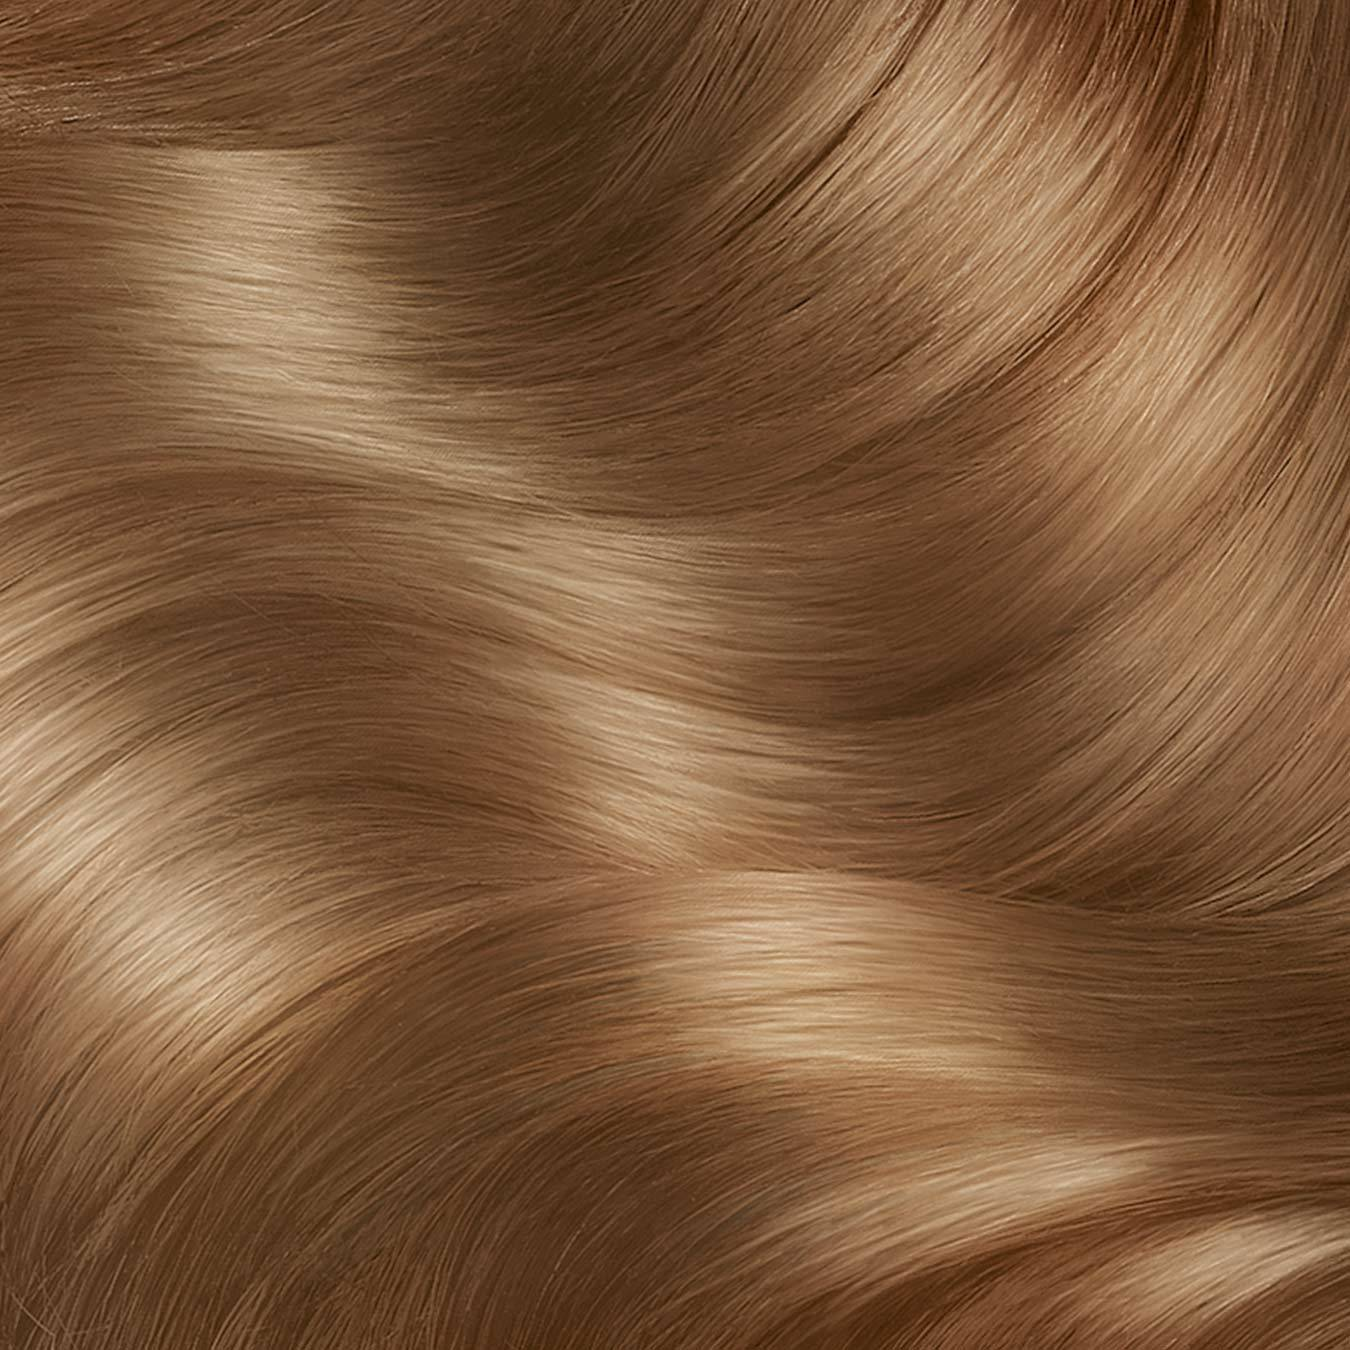 Hair Swatch of Express Retouch Dark Blonde.